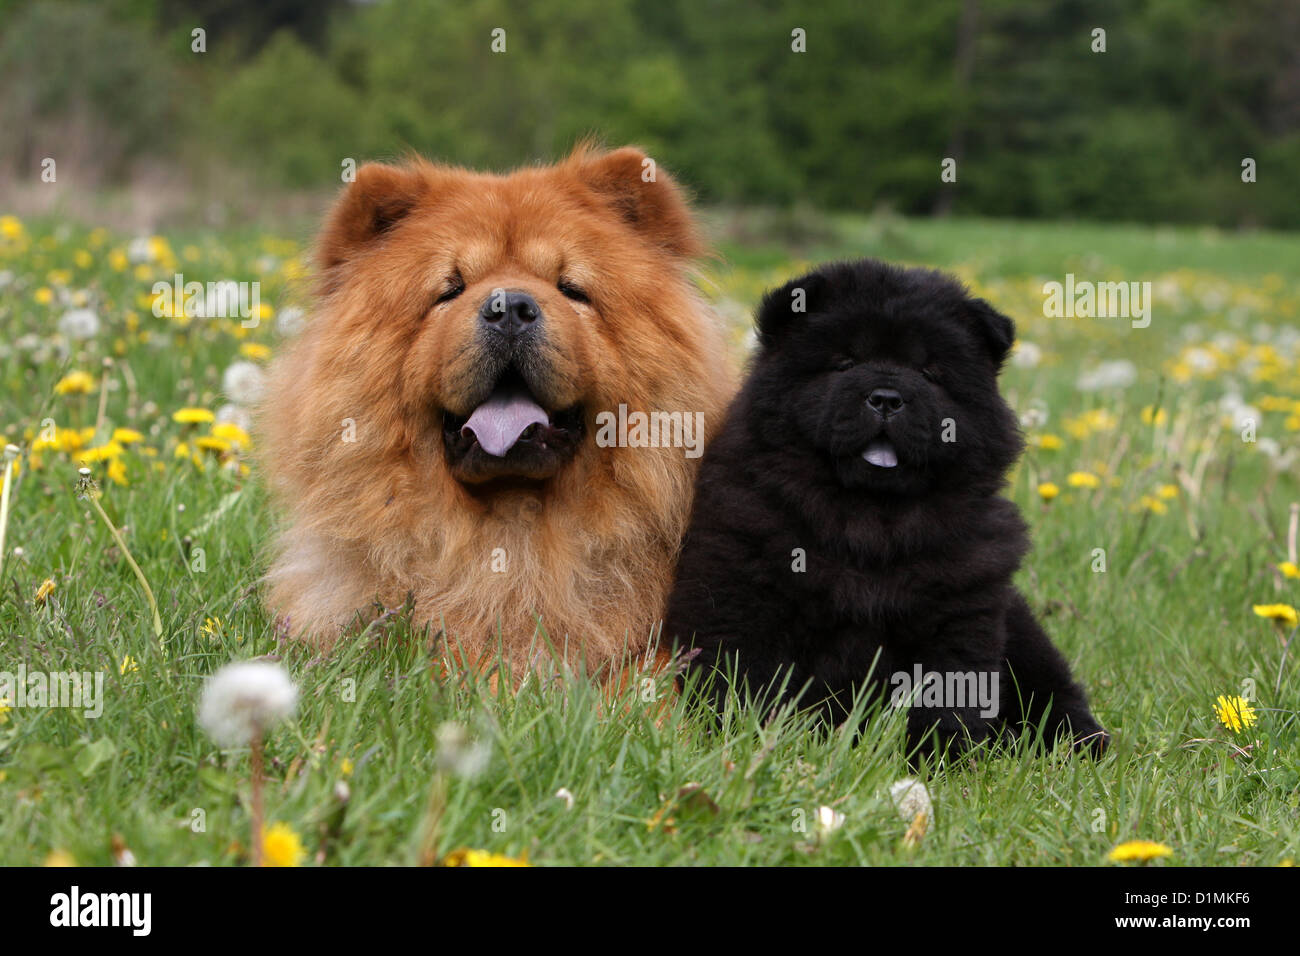 Dog Chow Chow Chow Chow Adult And Puppy Red And Black In A Meadow